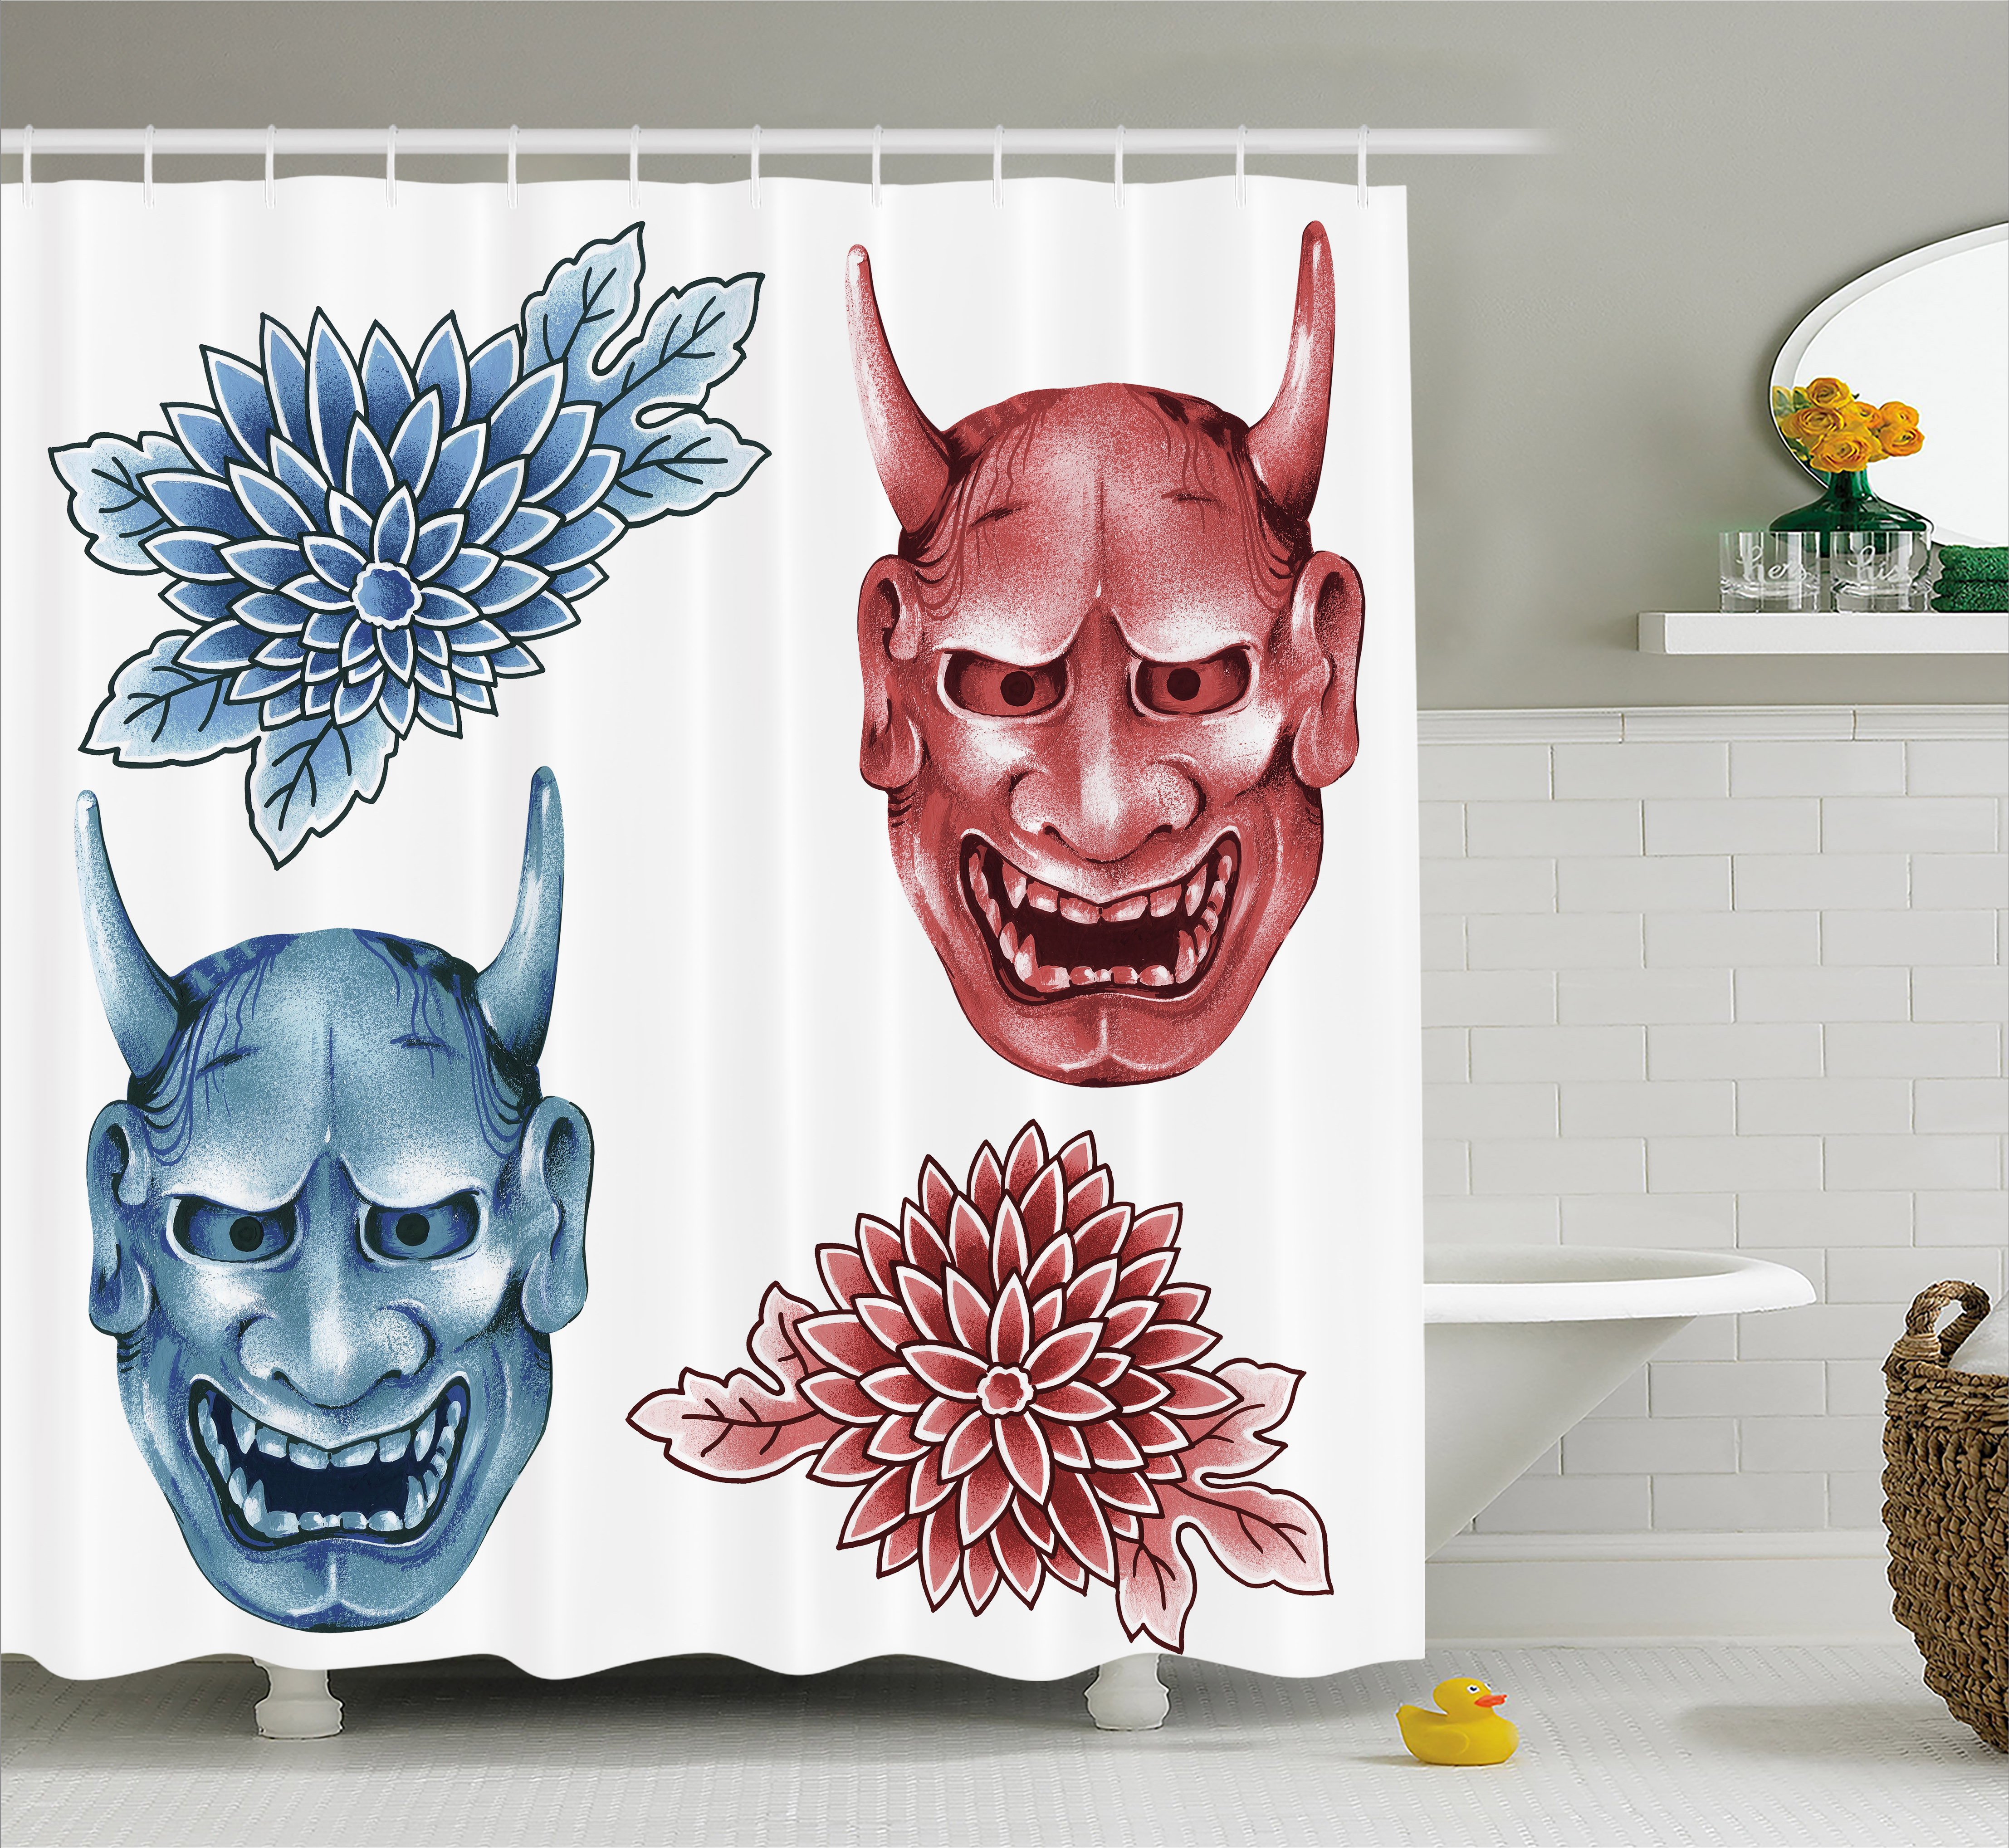 Kabuki Mask Decoration Shower Curtain, Different Colored Masks of Japanese Demoness Ornate Flowers Art, Fabric Bathroom Set with Hooks, 69W X 70L Inches, Blue Red White, by Ambesonne